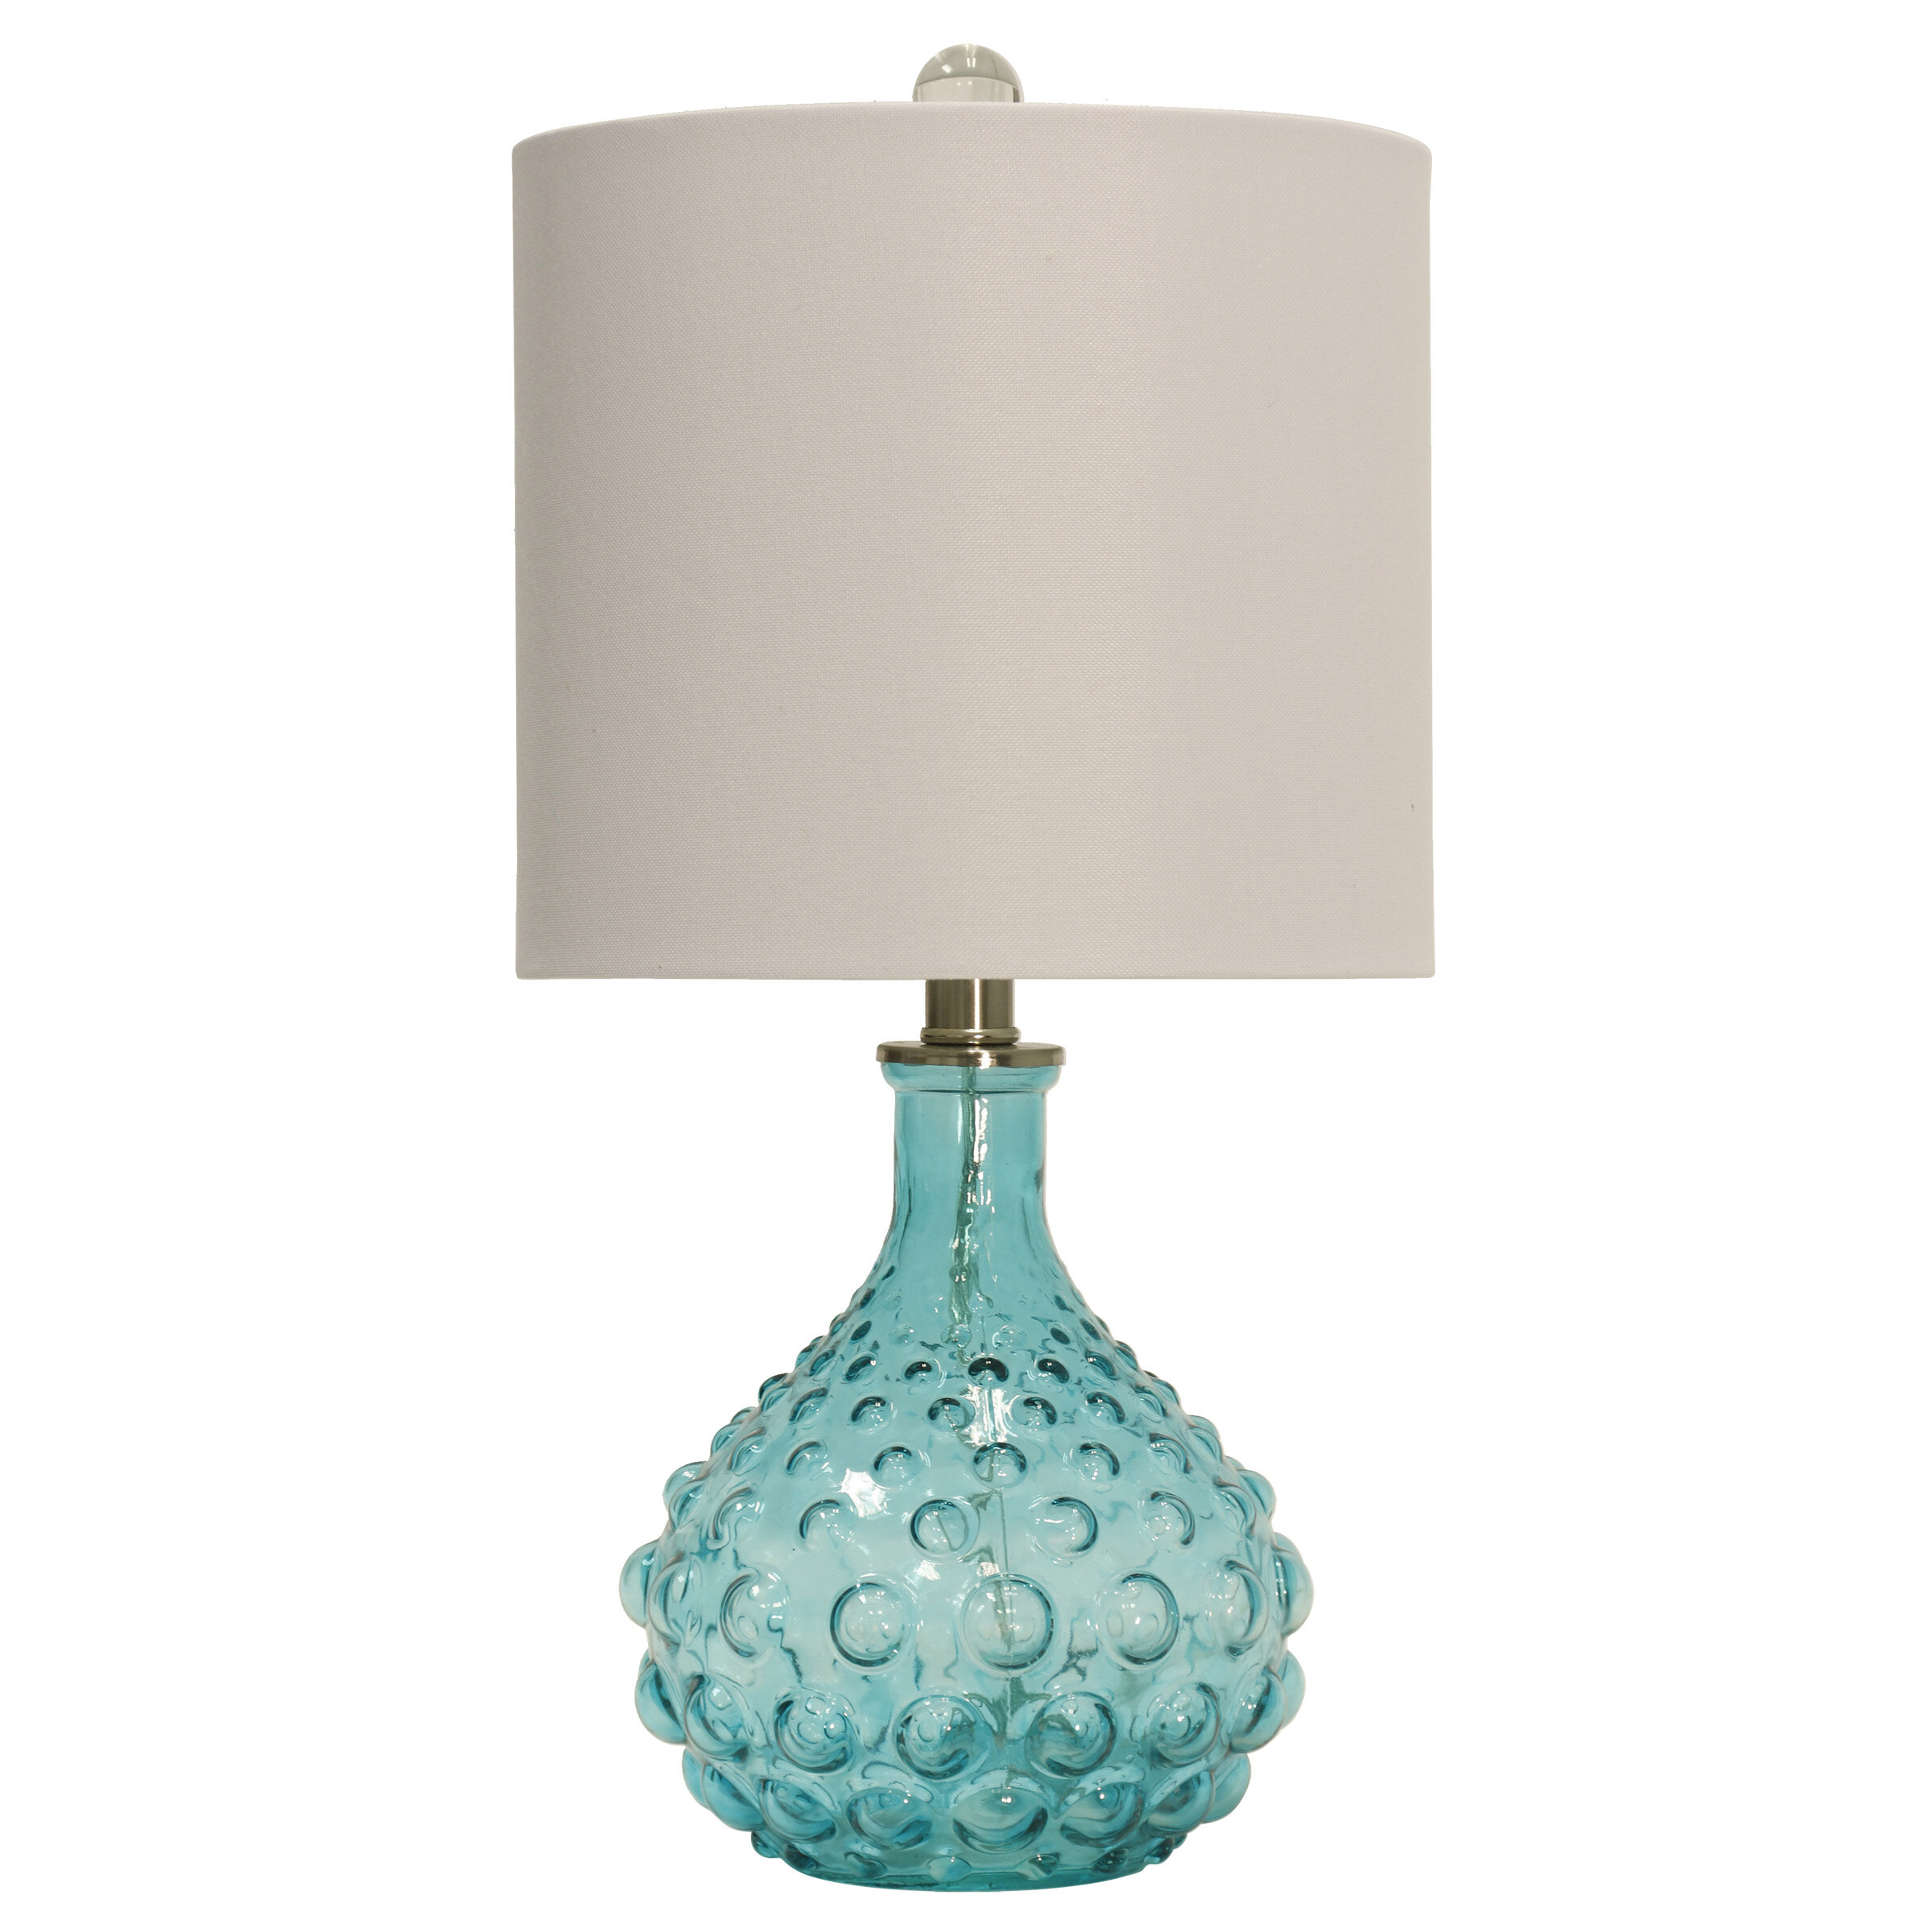 O Shaughnessy Bubble Glass 20 Table Lamp Reviews Joss Main